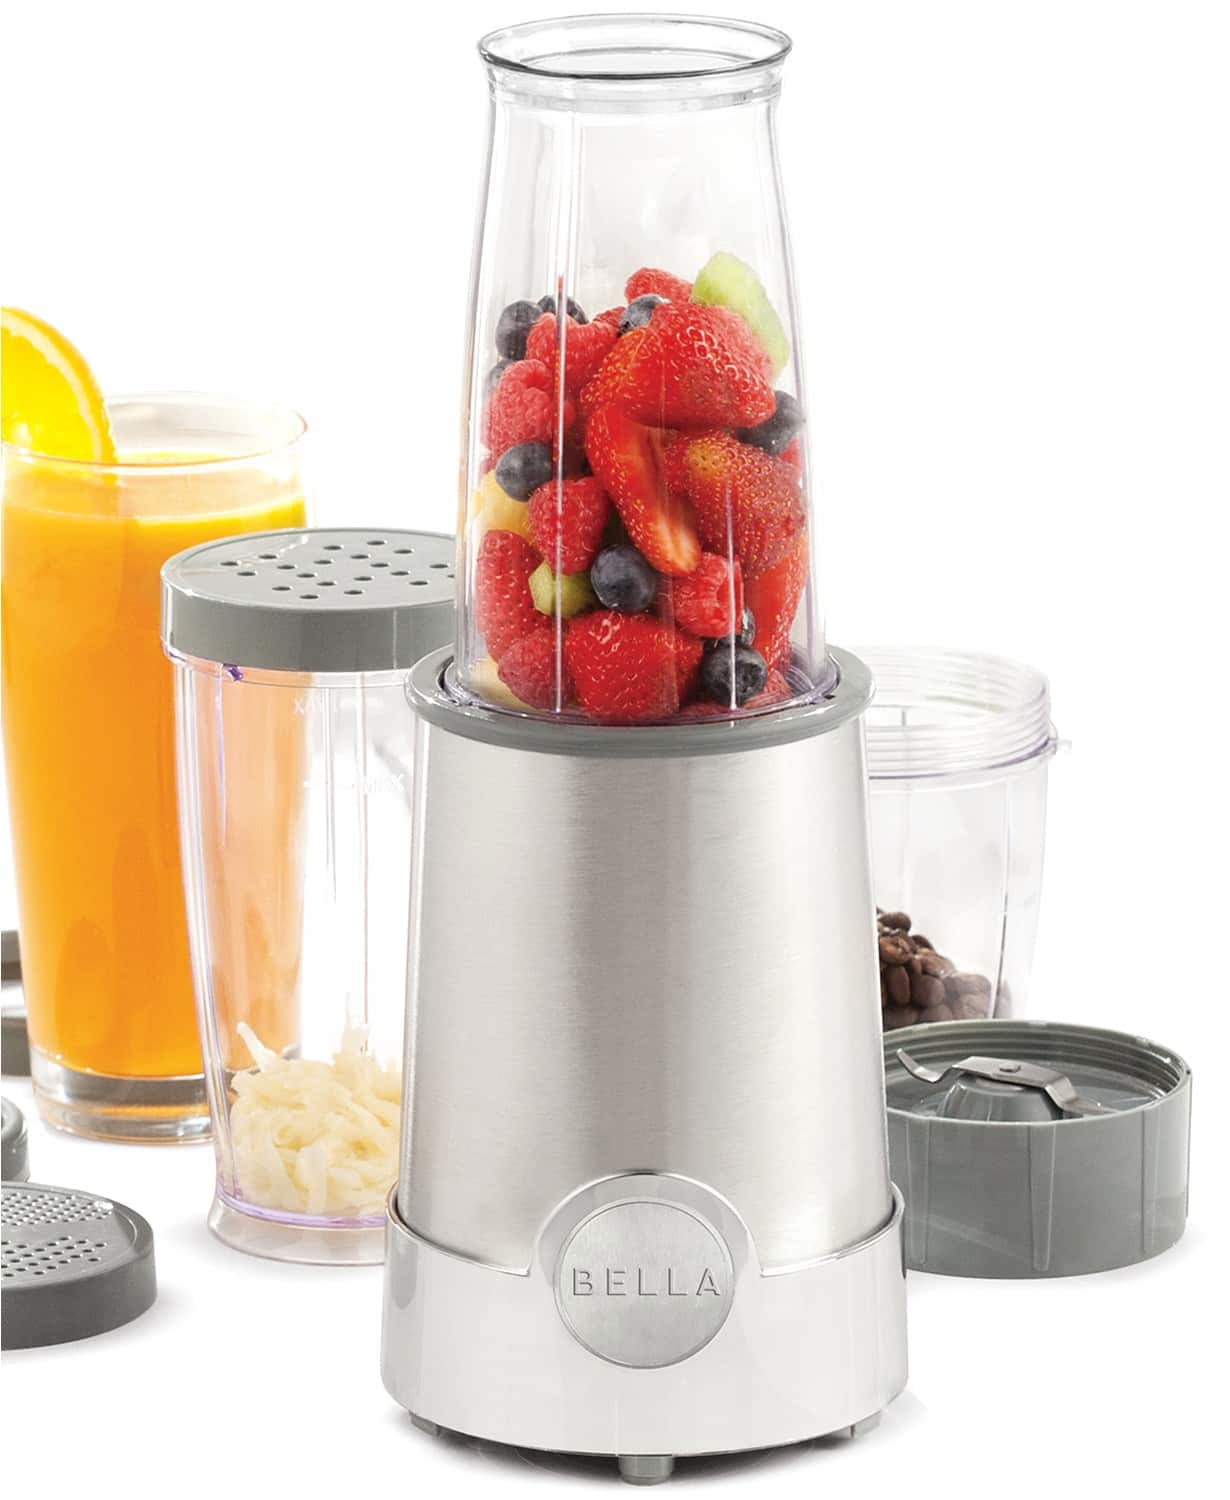 Bella 4-Slice Toaster Oven or Rocket Blender